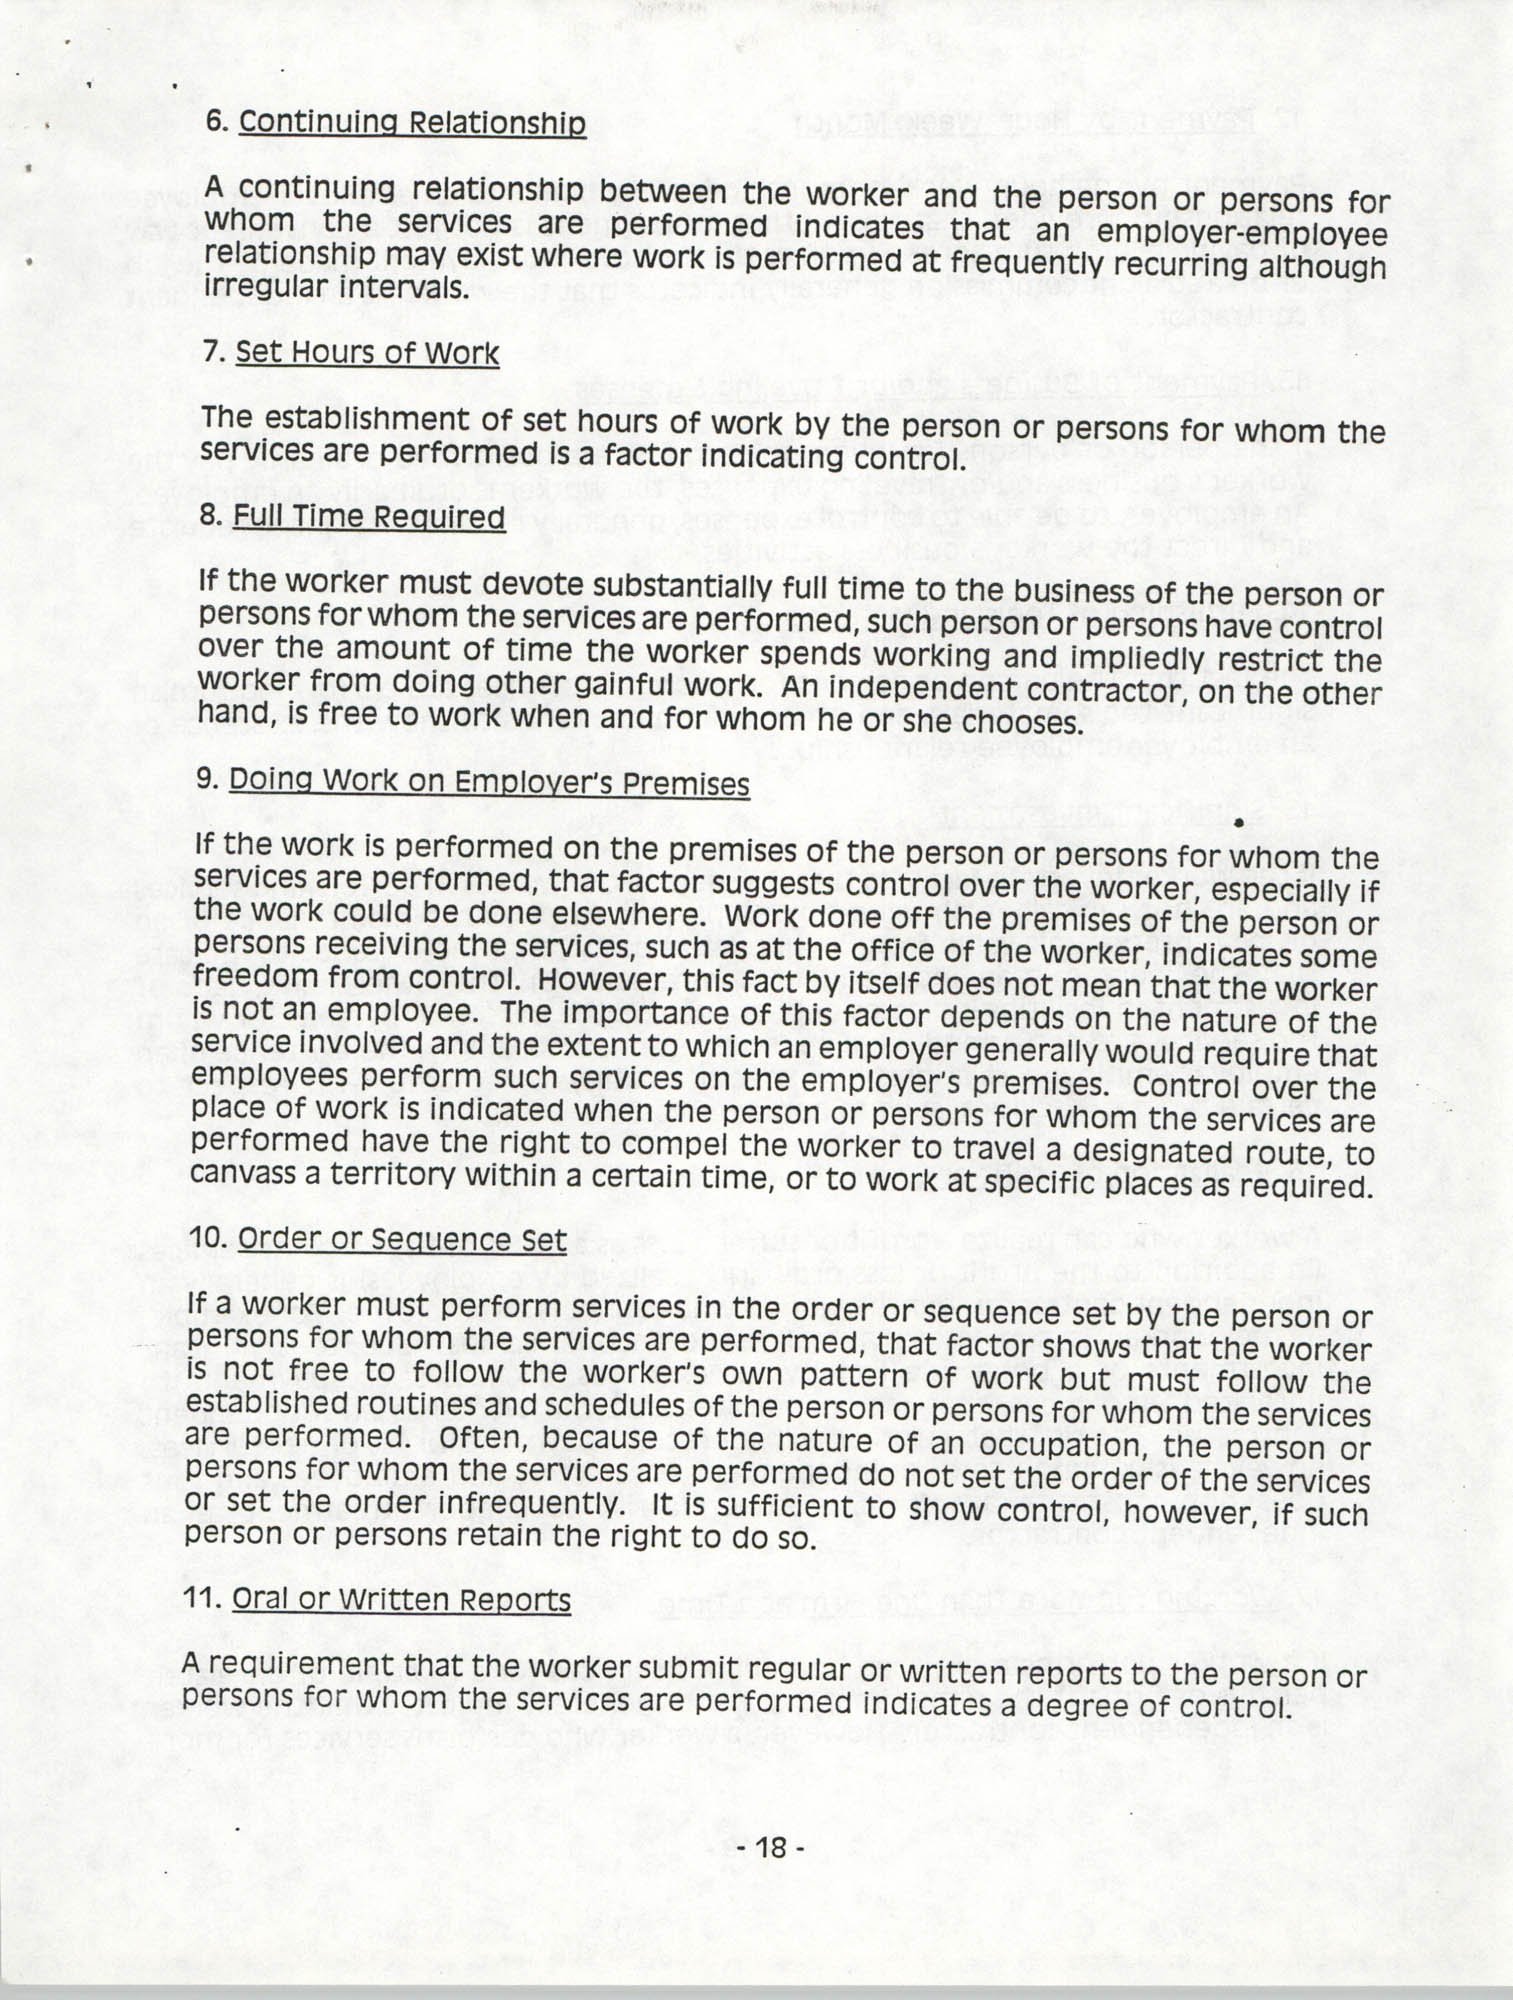 Tax Responsibilities of NAACP Branches as 501(c) (4) Entities, Page 18